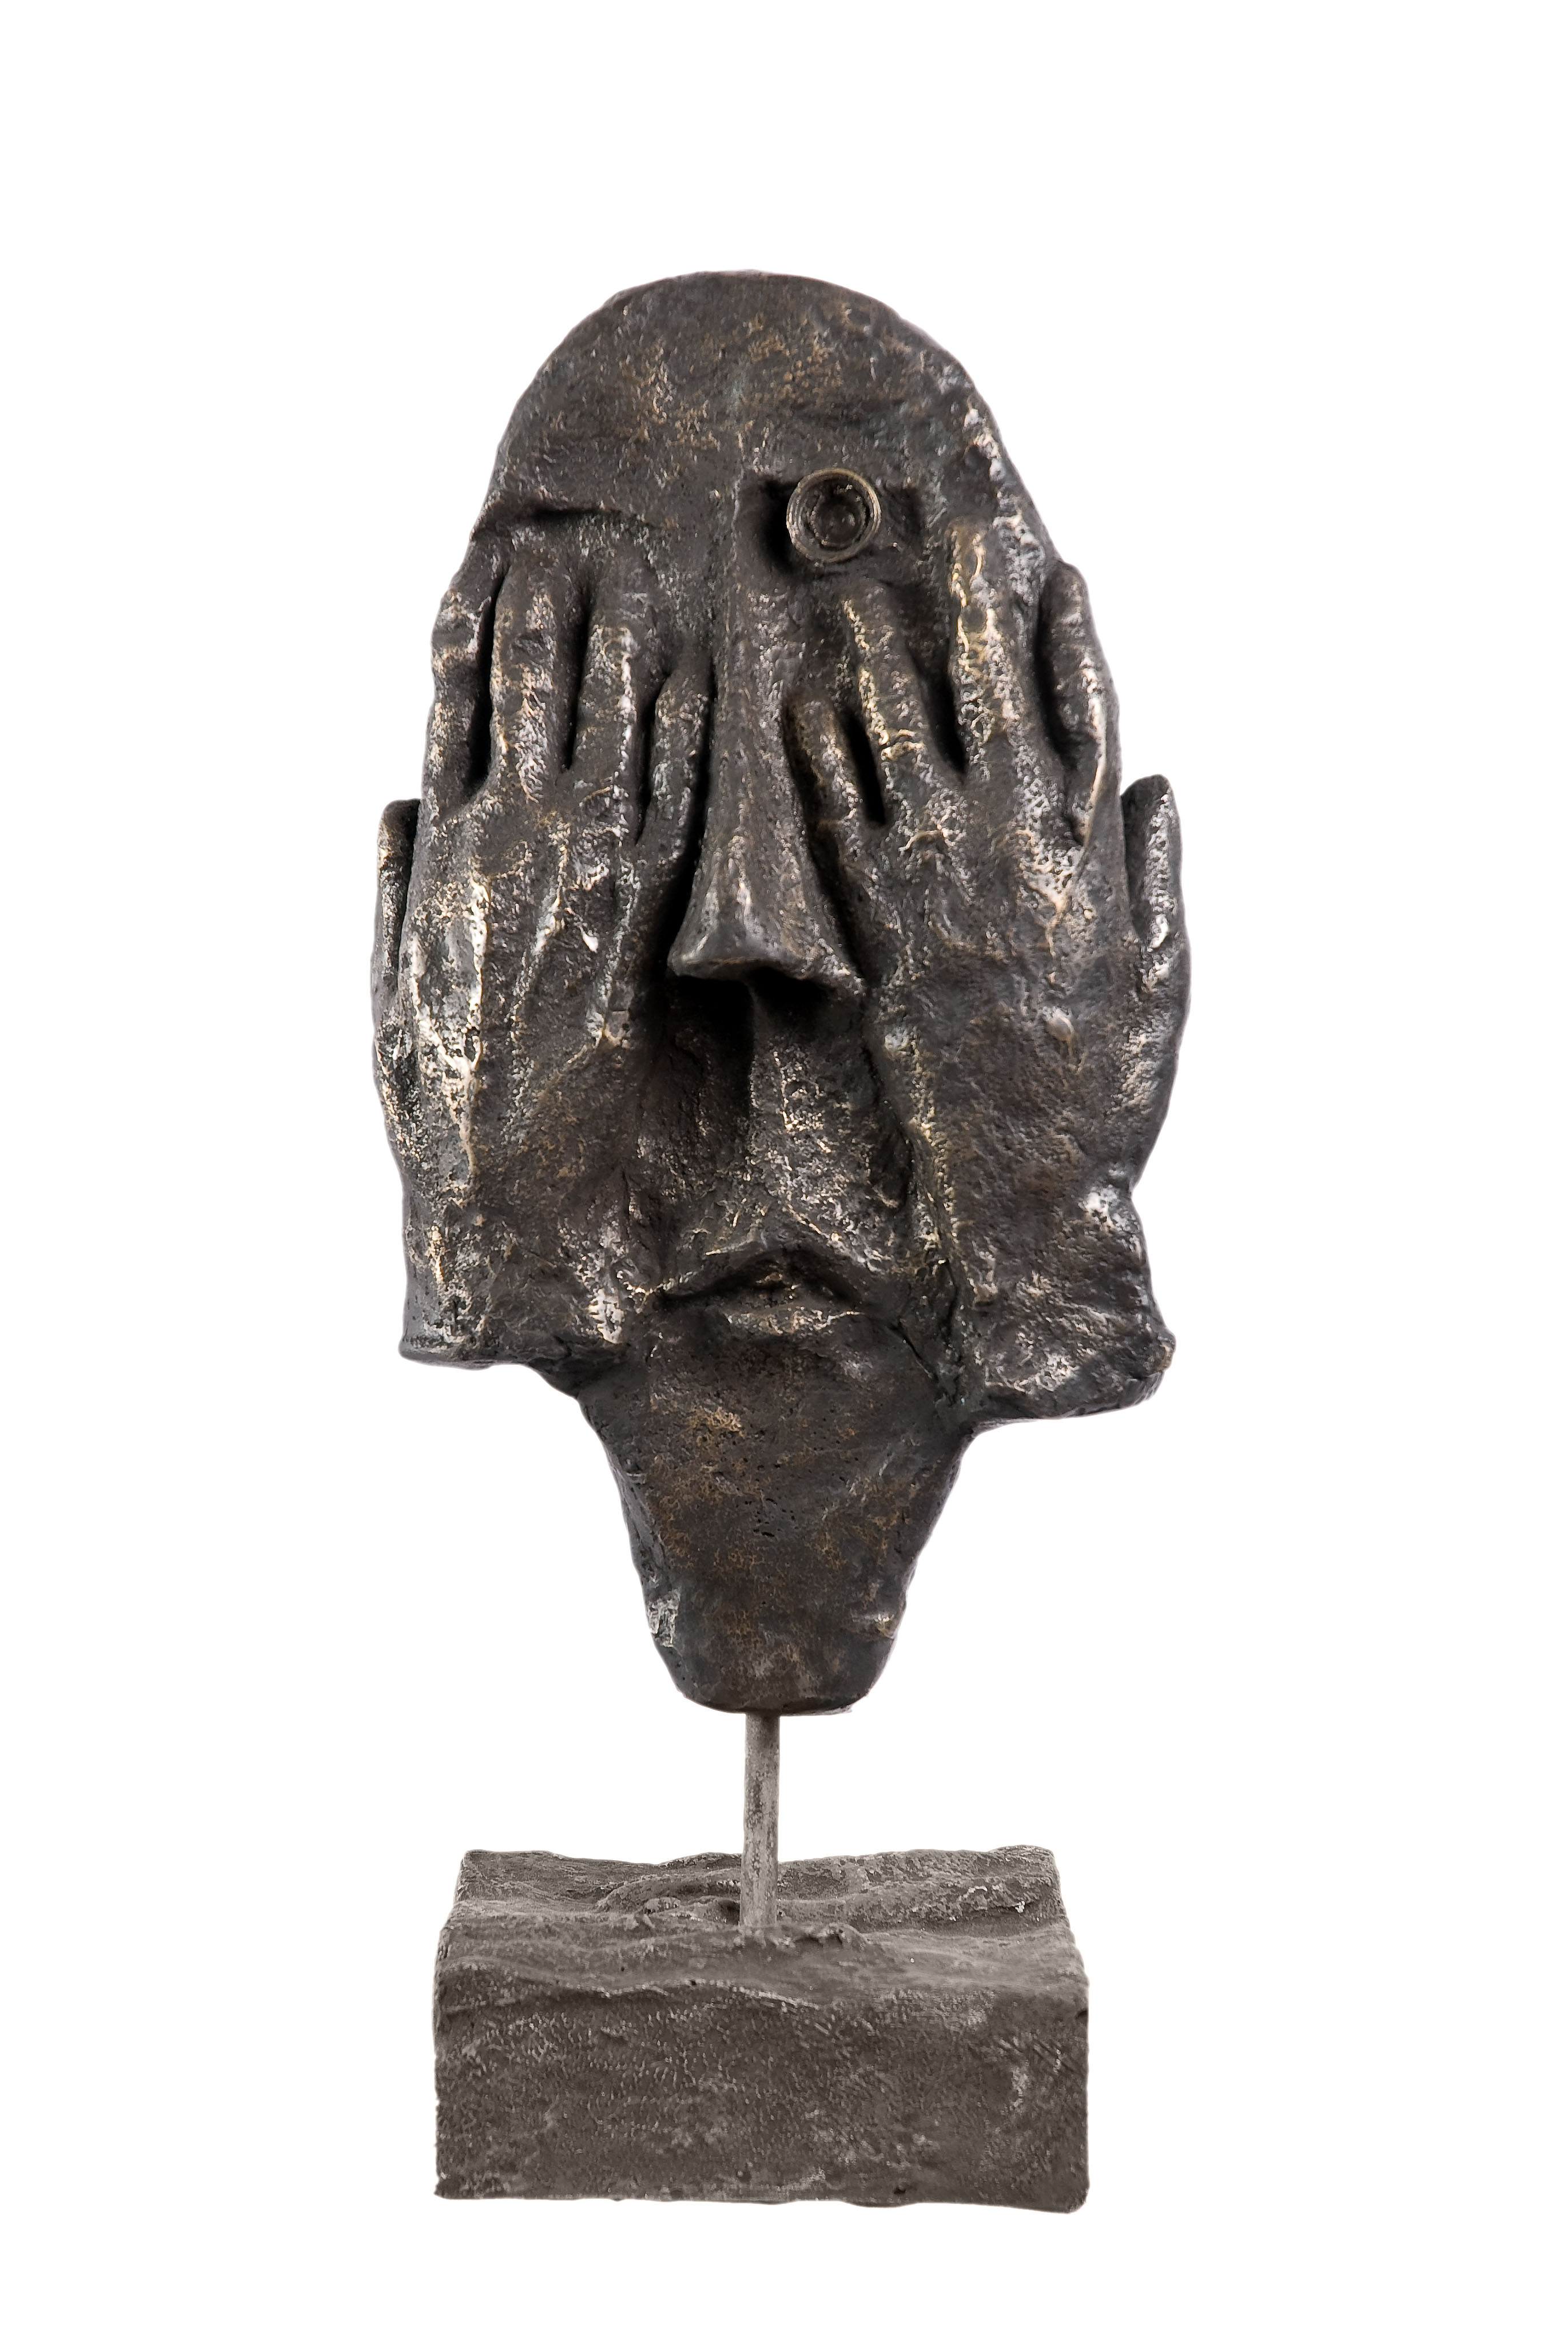 50 X 15 X 20 cm Sculpture Bronze (8 Edit